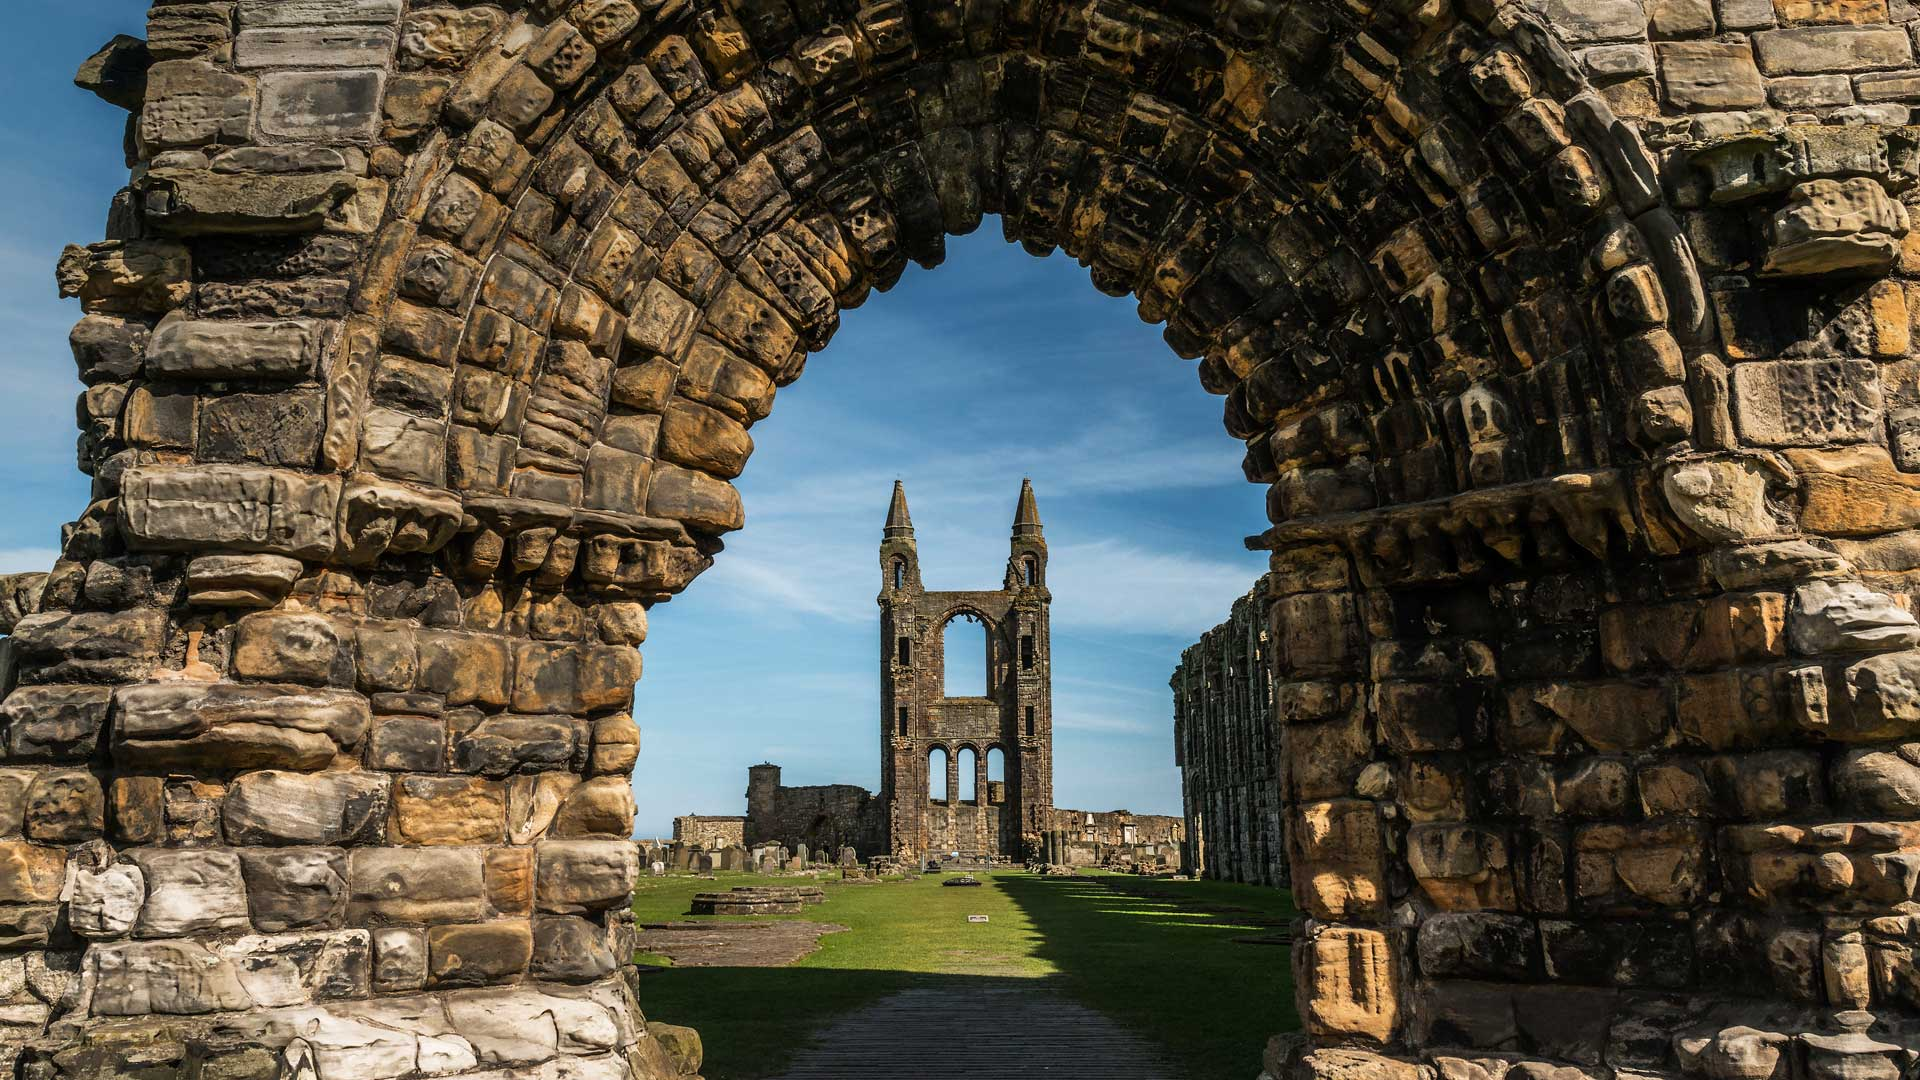 St Andrews Cathedral Bing Wallpaper Download 1920x1080